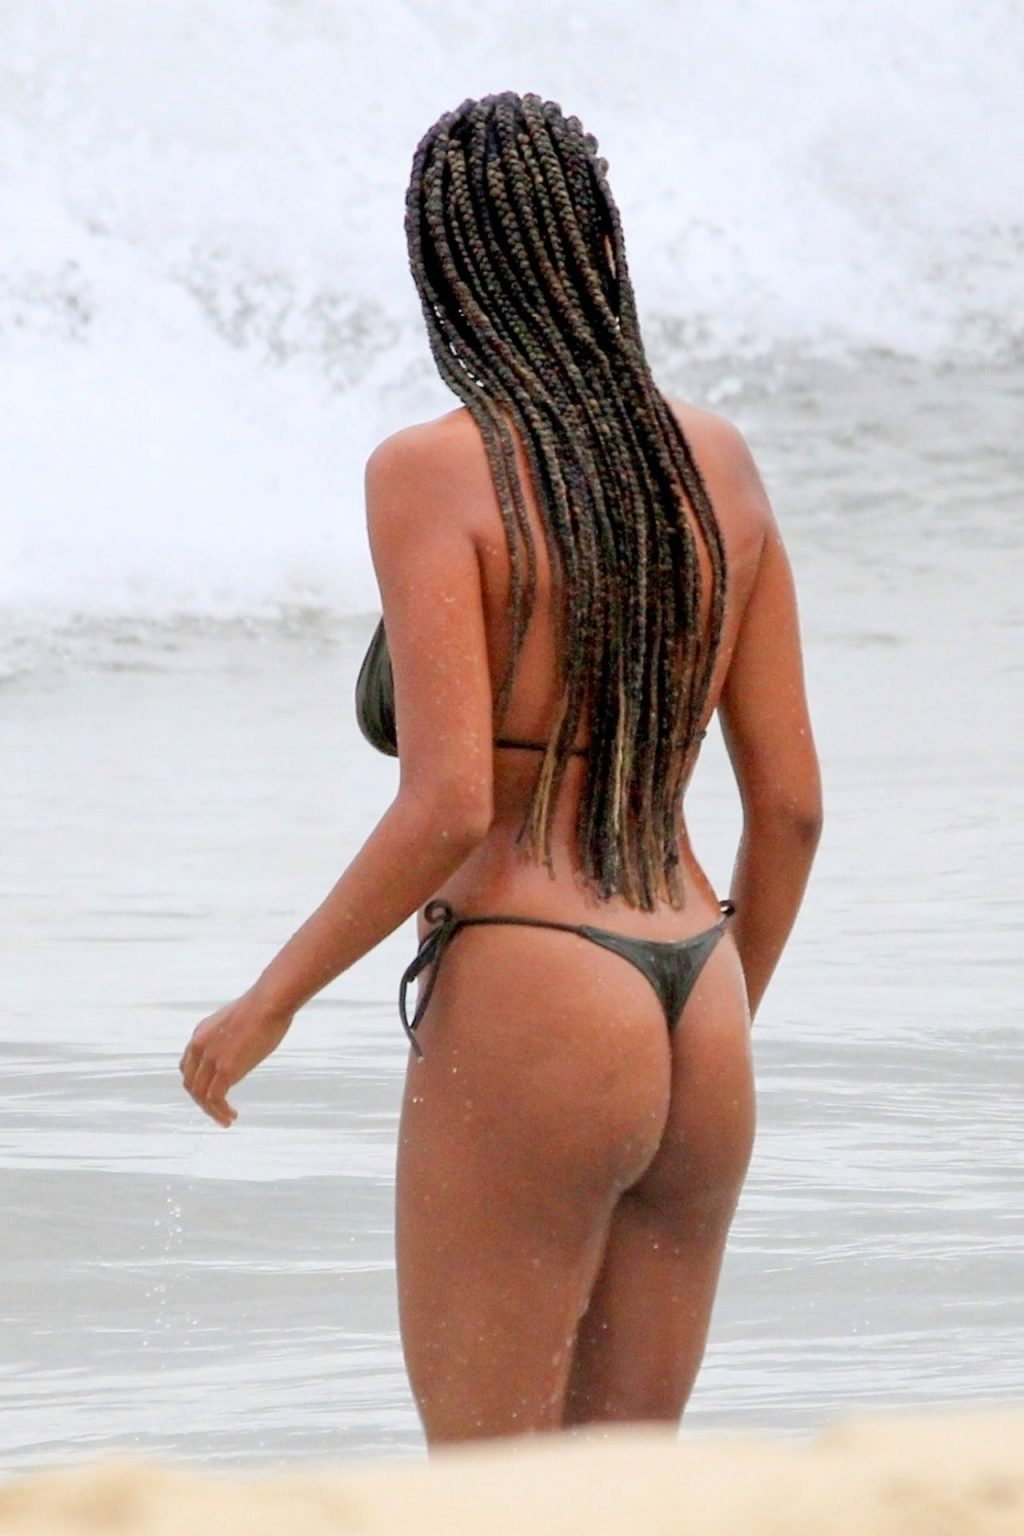 Stunning Tina Kunakey Displays New Braids and Sexy Bikini Body in Rio (46 Photos)